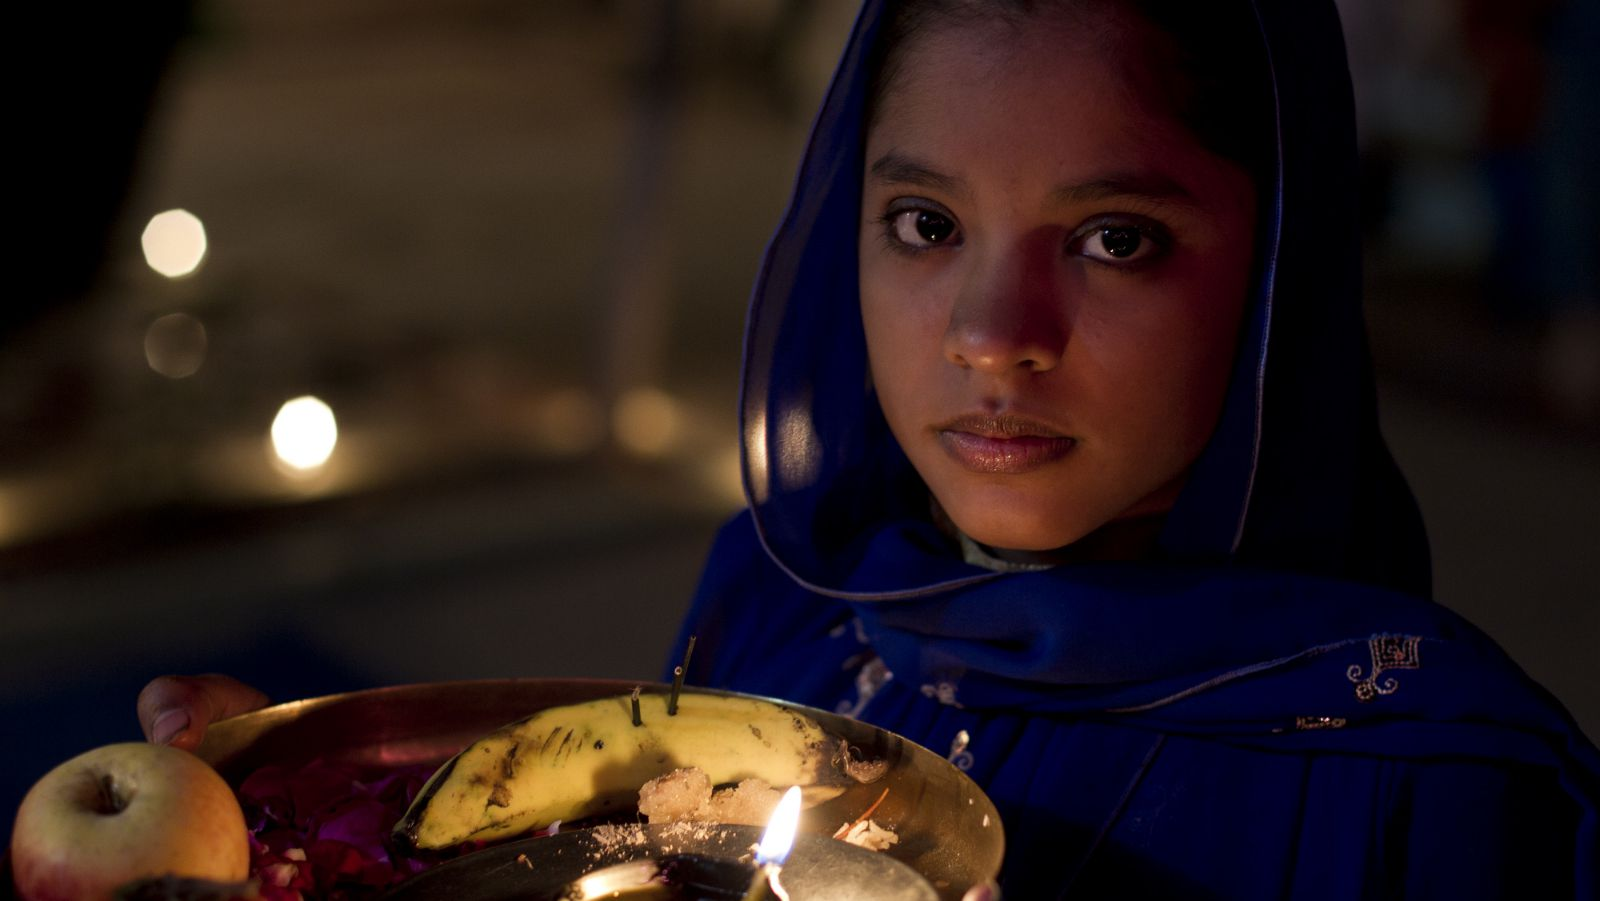 A Pakistani Hindu girl receives guests at a temple to celebrate Diwali festival in Rawalpindi, Pakistan, on Wednesday, Nov. 14, 2012. Diwali, the festival of lights dedicated to the Goddess of wealth Lakshmi, is being celebrated across the country.